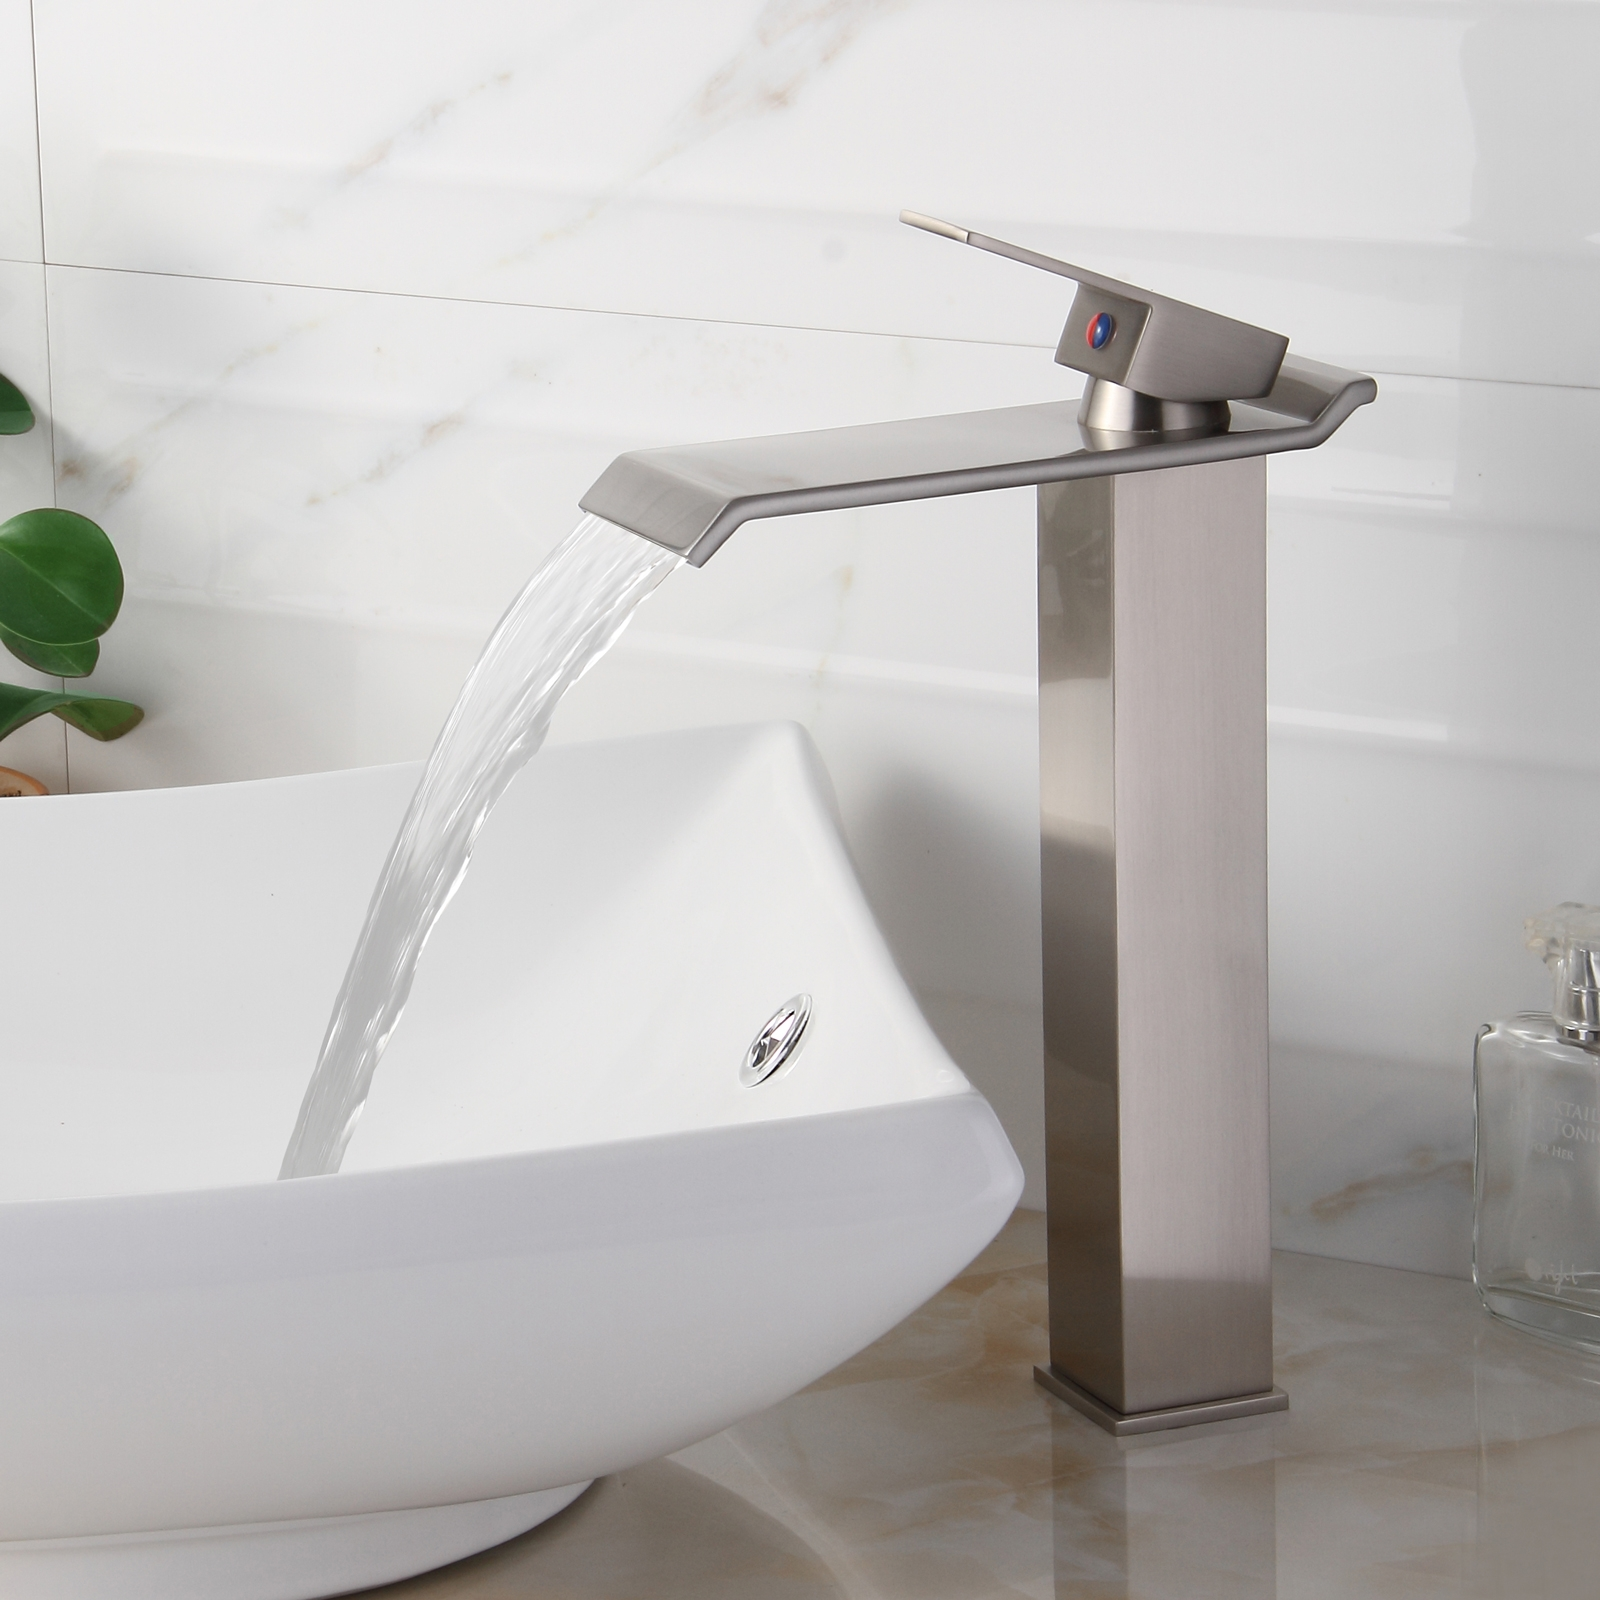 Ideas, bathroom fabulous waterfall faucet for bathroom throughout dimensions 1600 x 1600  .